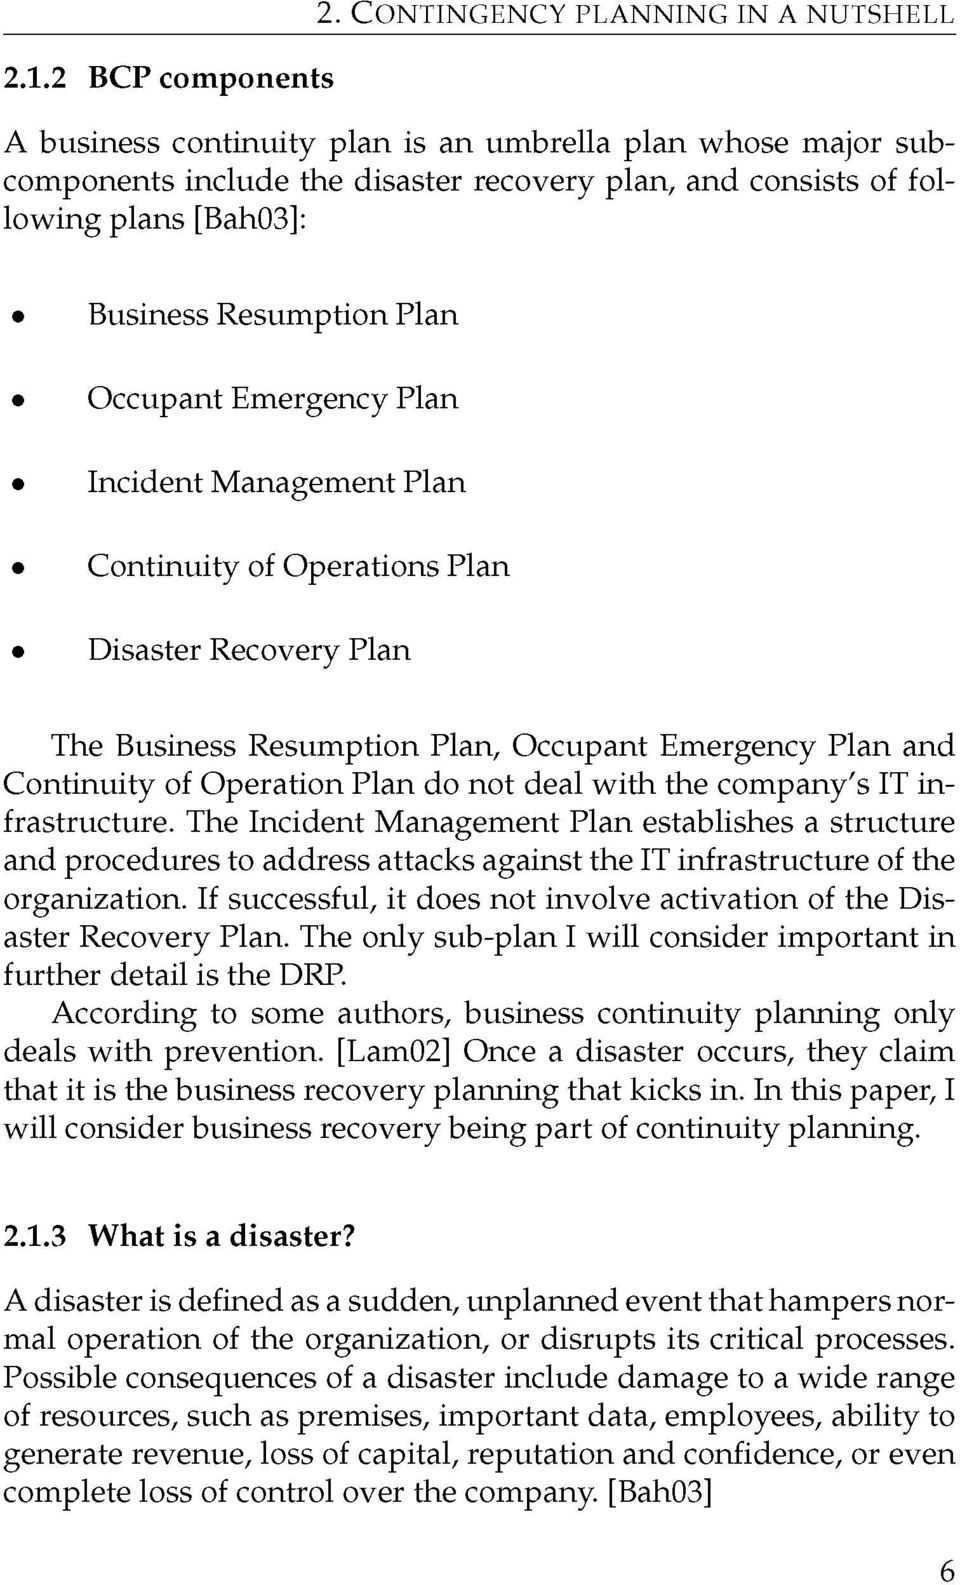 Resumption Plan Occupant Emergency Plan Incident Management Plan Continuity of Operations Plan Disaster Recovery Plan The Business Resumption Plan, Occupant Emergency Plan and Continuity of Operation